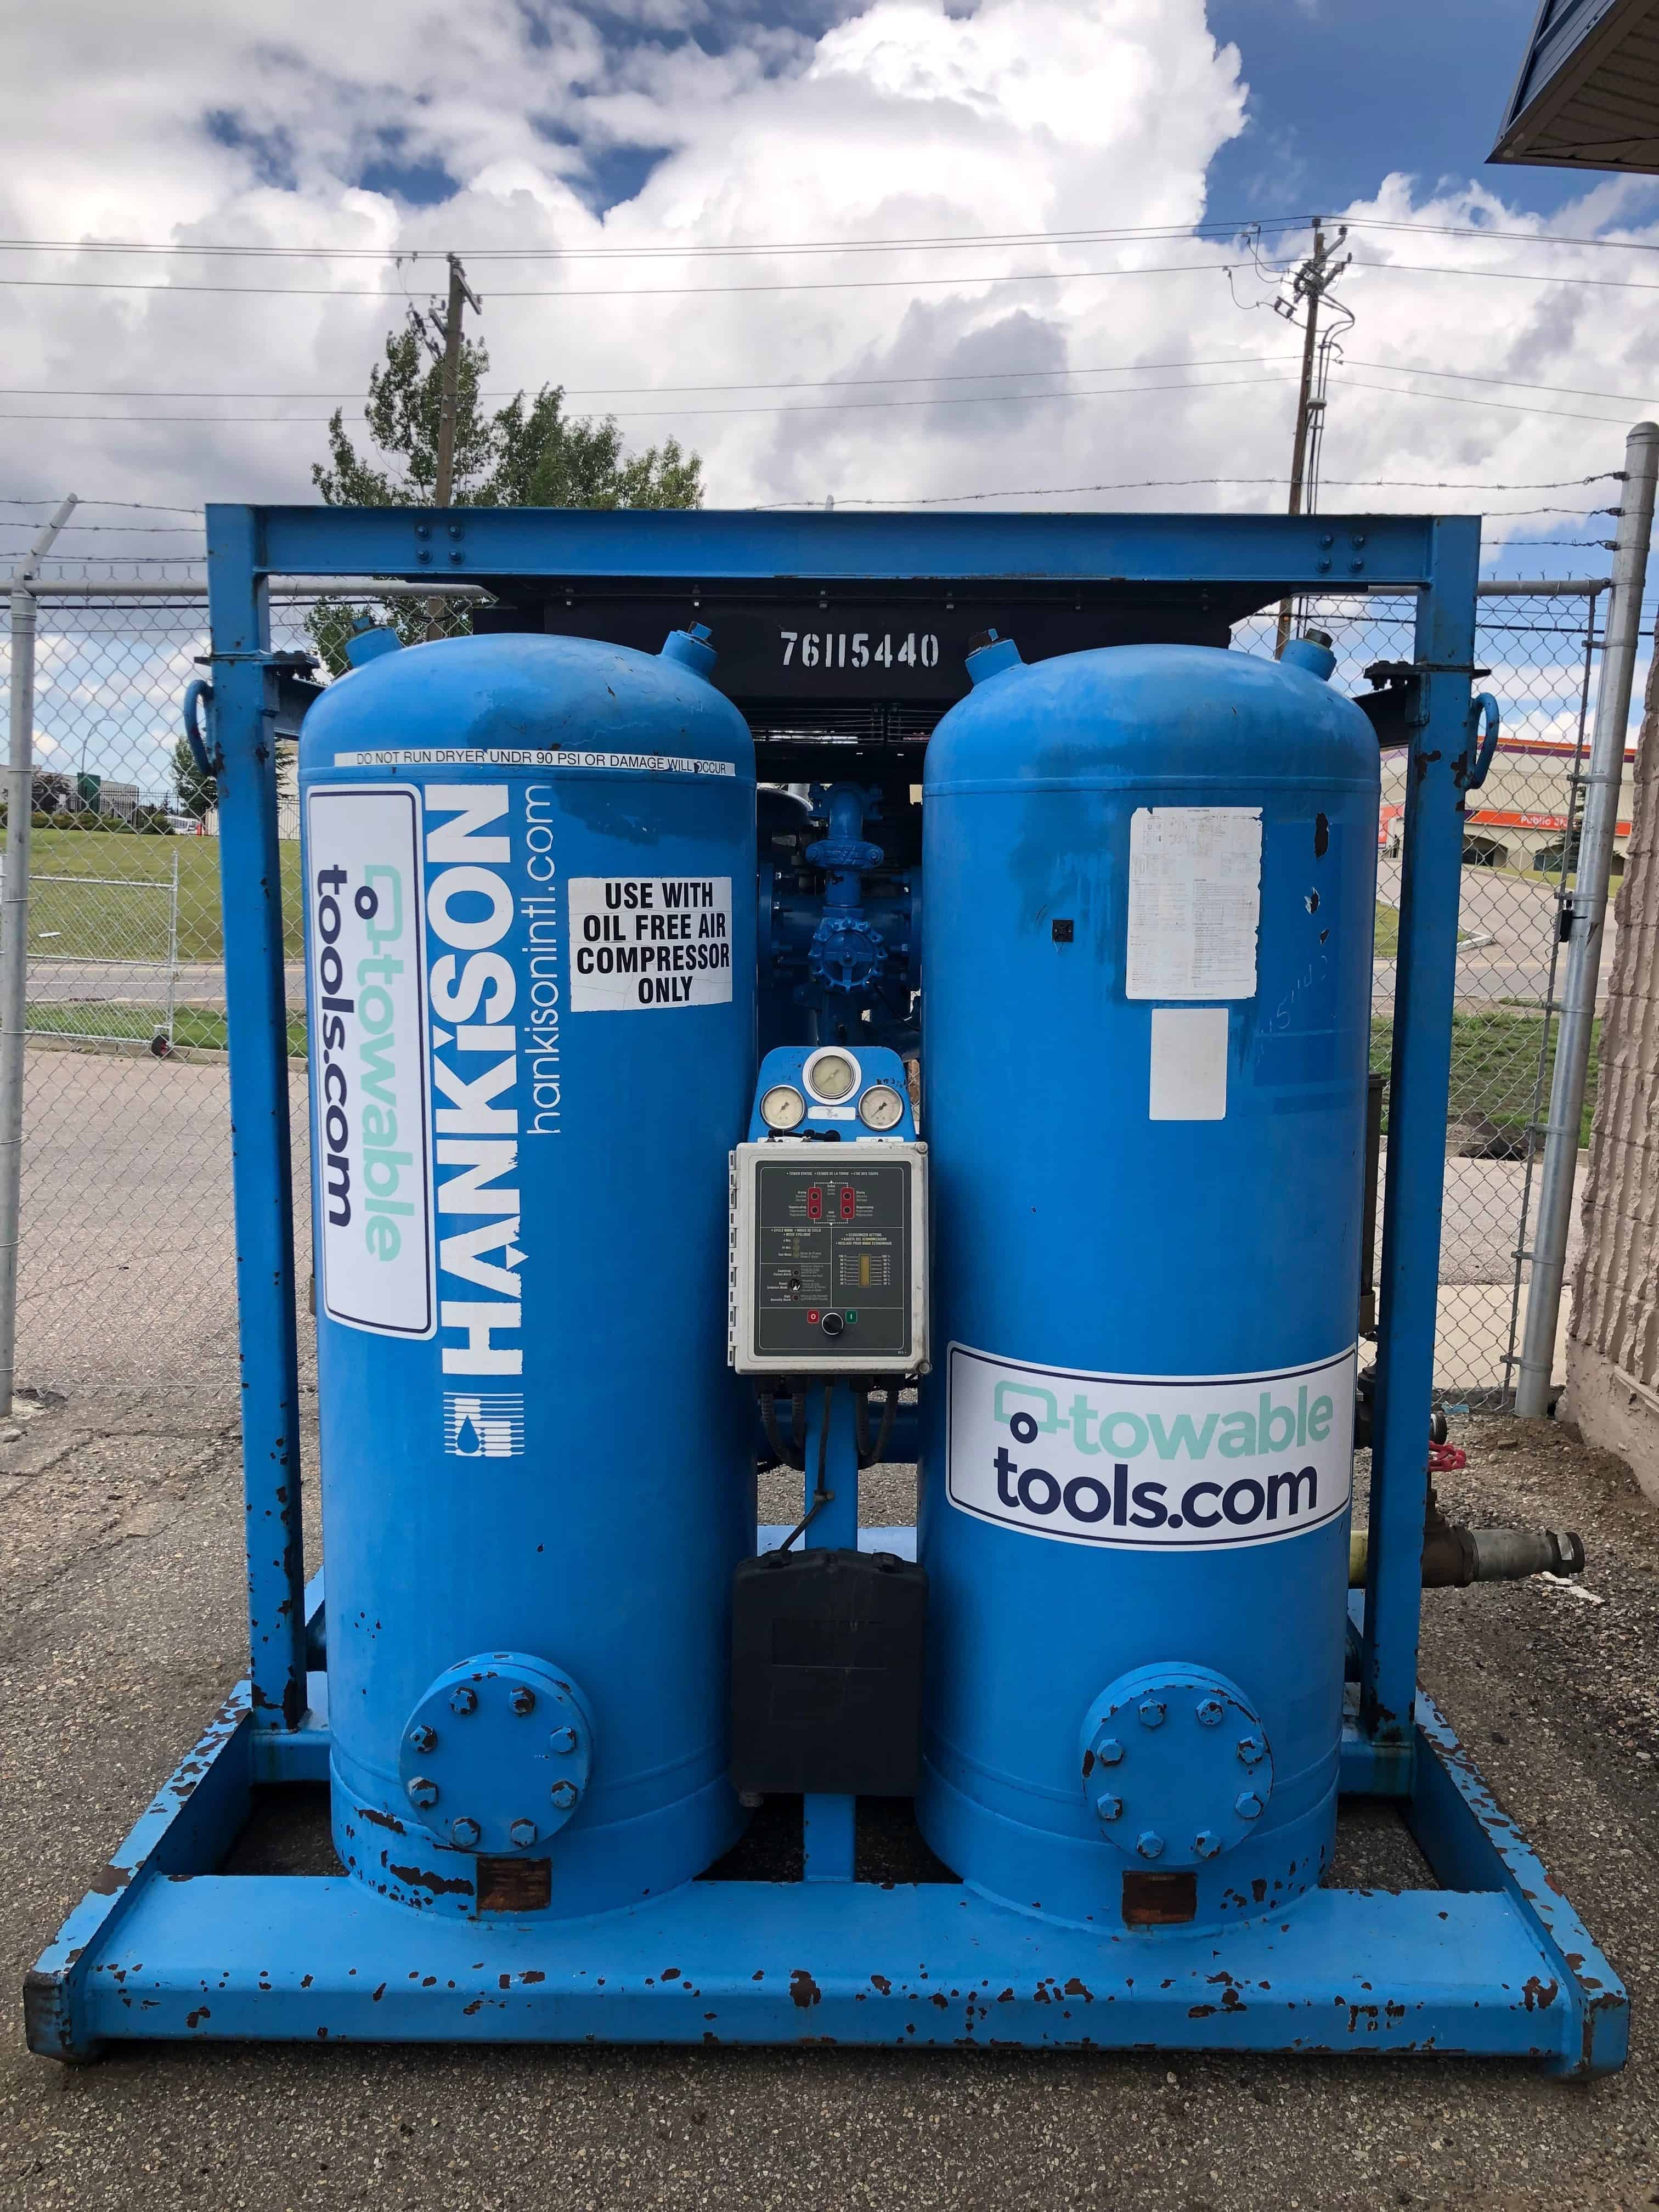 1600 cfm desiccant air dryer for sale and rental in Calgary, Alberta - Towable Tools